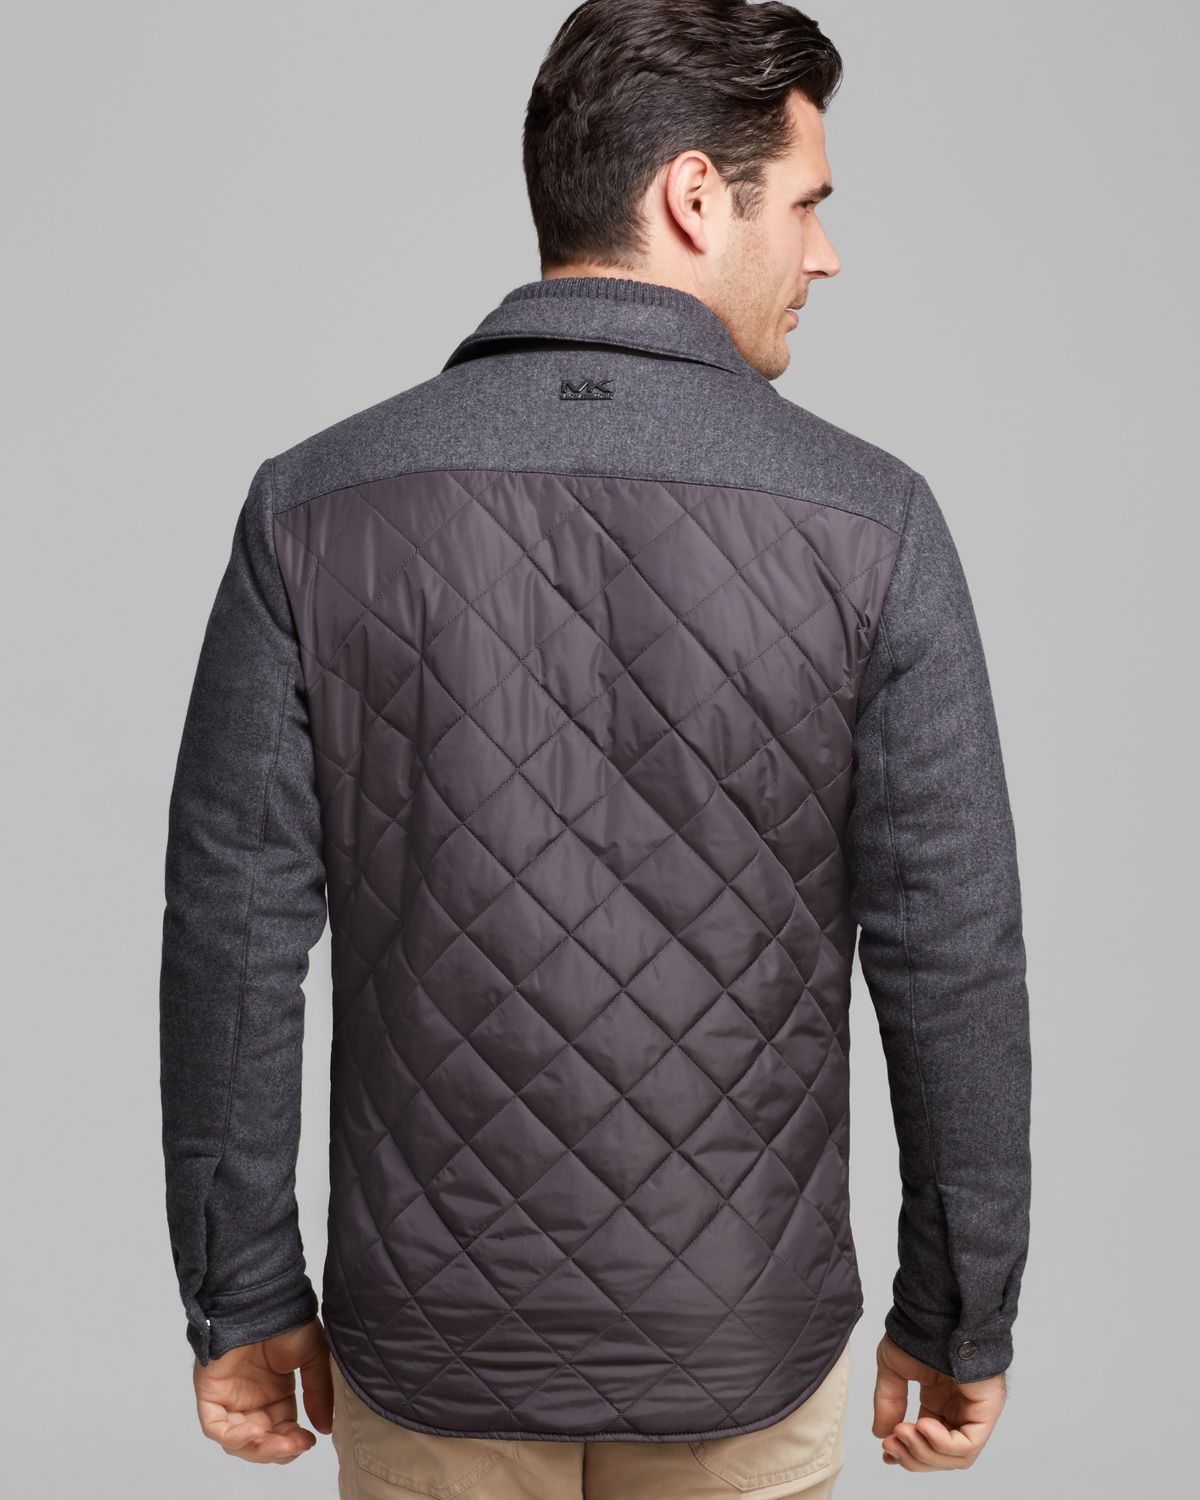 Michael Kors Quilted Shirt Jacket In Gray For Men Lyst